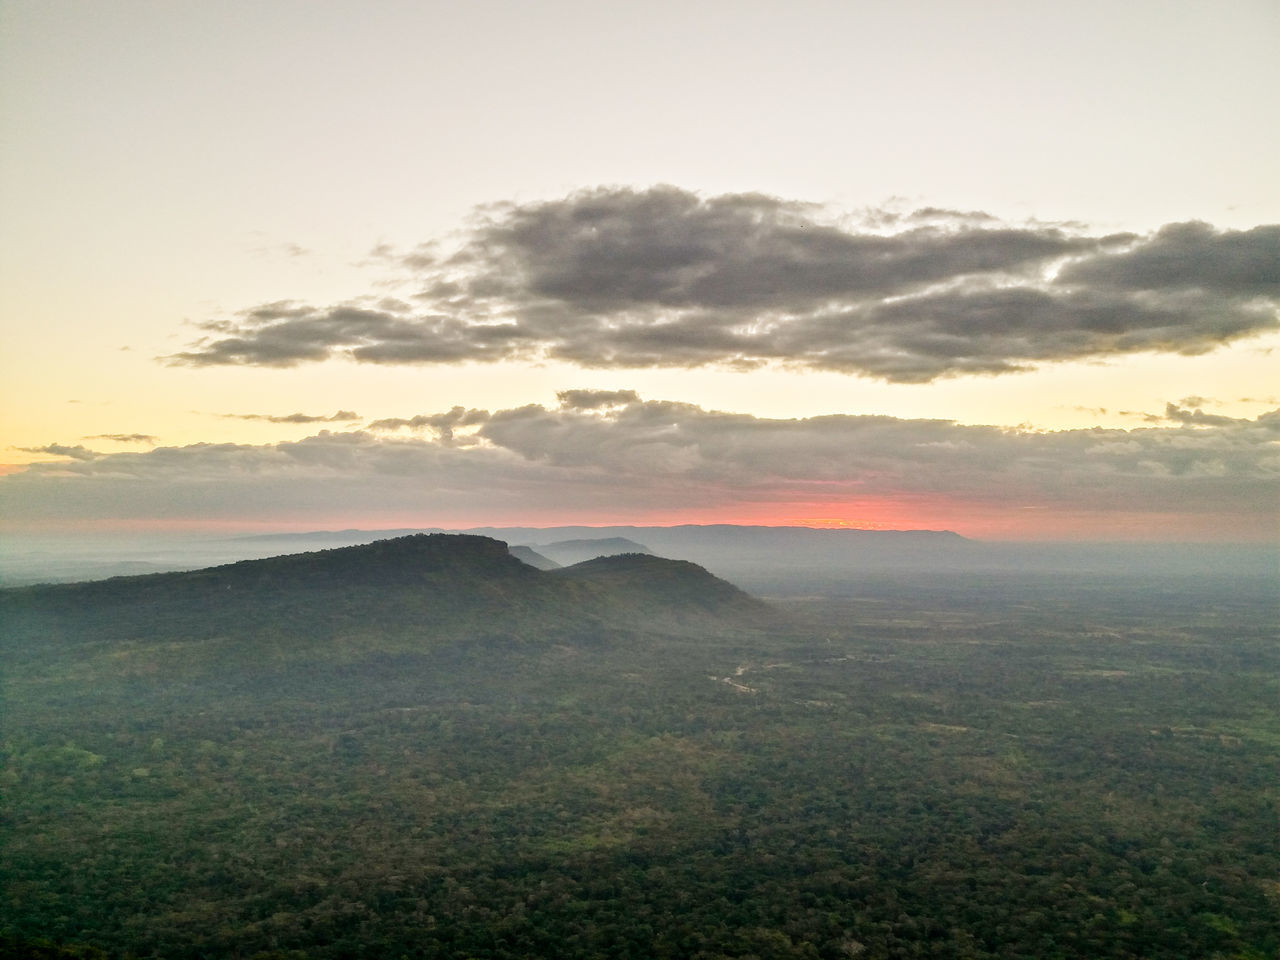 Landscape Mountain Trees Sky Sun Sunset Forest View High Cambodia Pranom Rung Phamoeidang